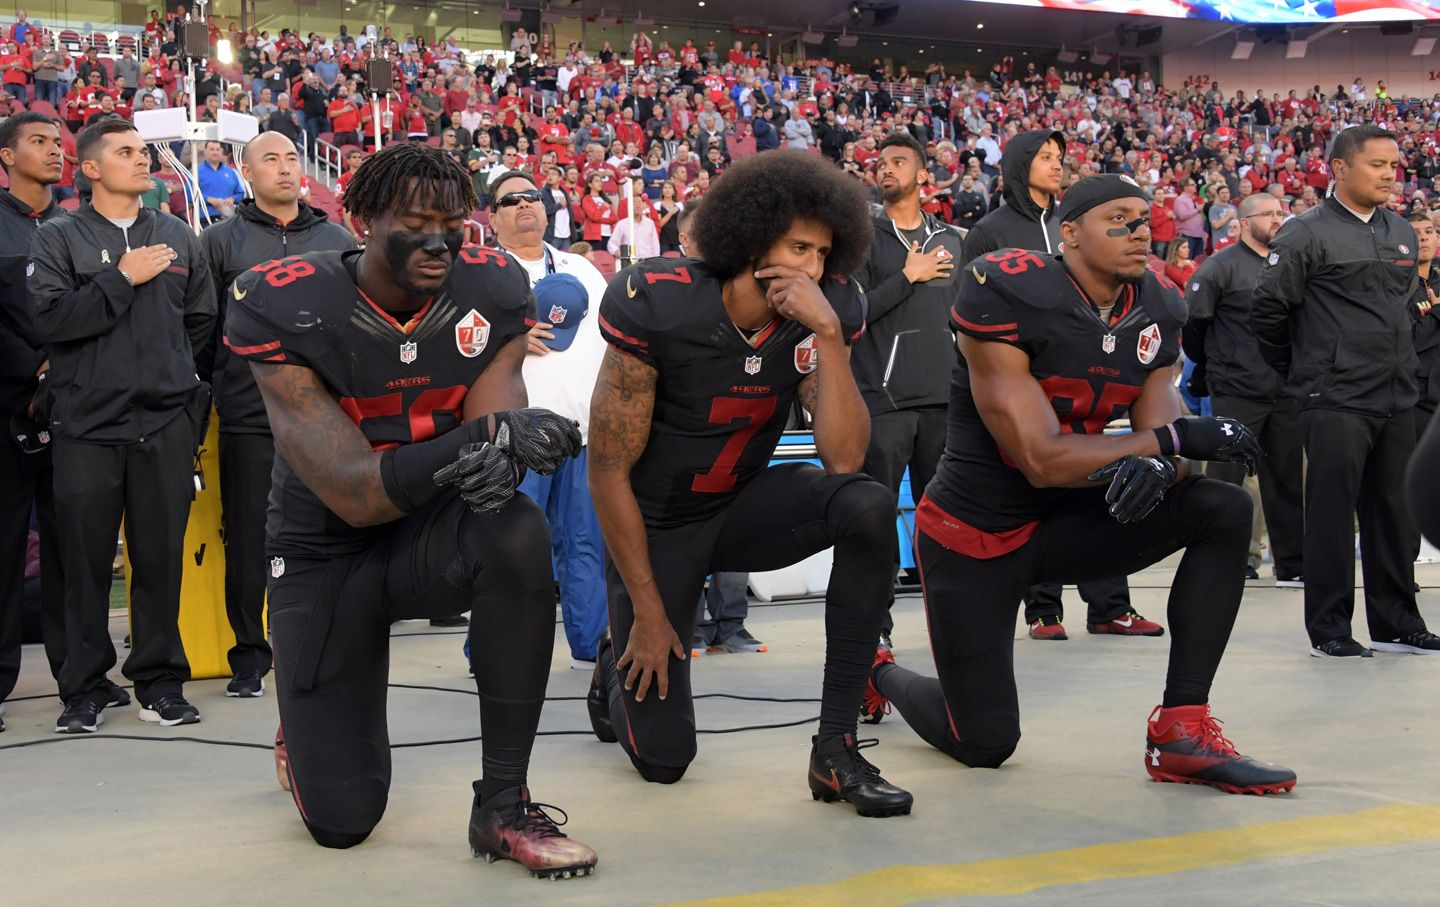 Colin Kaepernick Was Mocked And Threatened For Taking A Knee He S Also Winning Colin Kaepernick Nfl Colin Kaepernick Parents